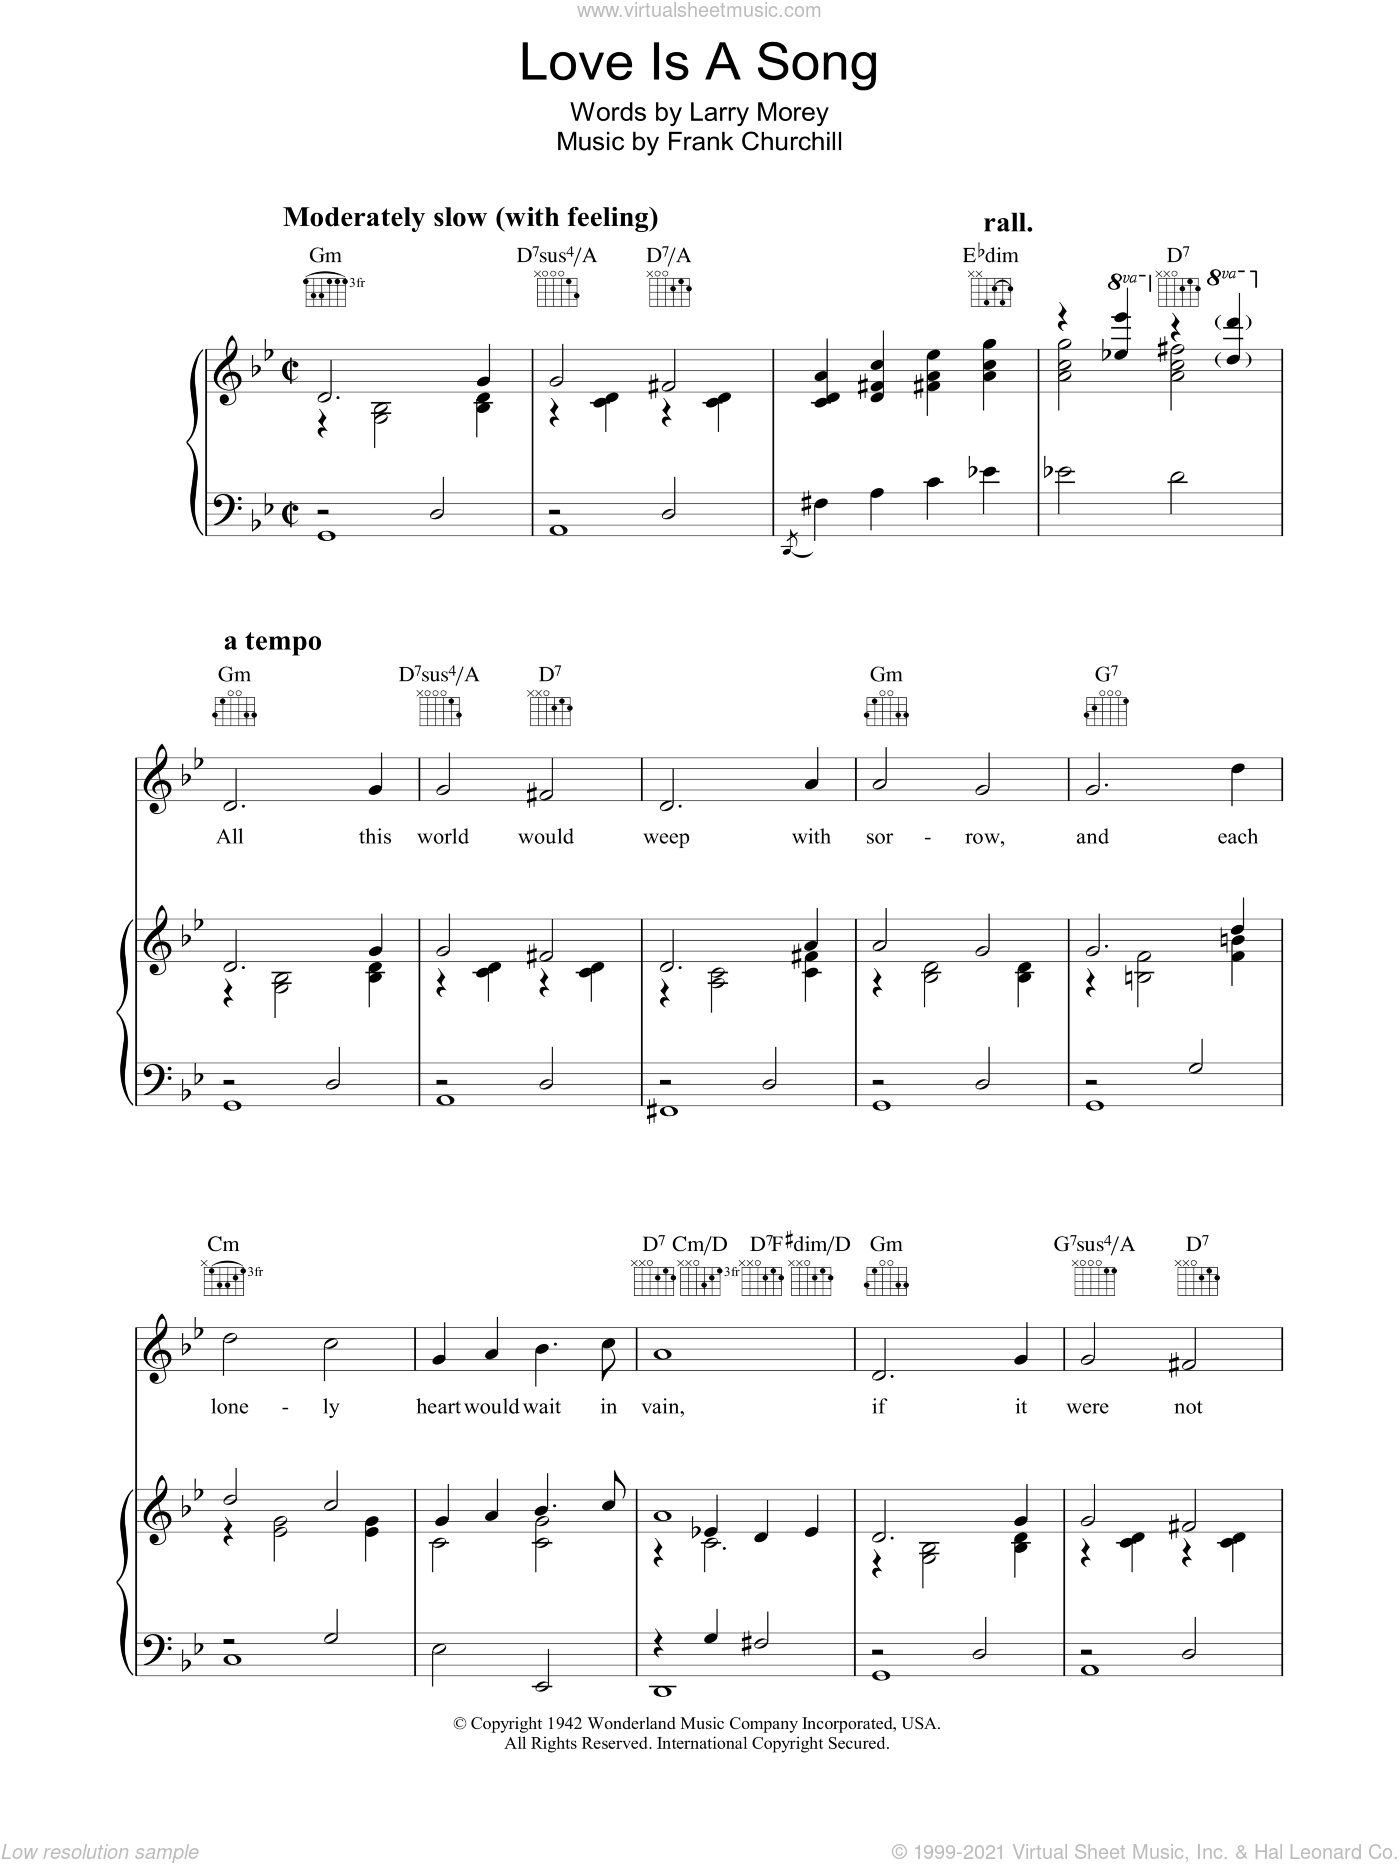 Love Is A Song (from Walt Disney's Bambi) sheet music for voice, piano or guitar by Larry Morey